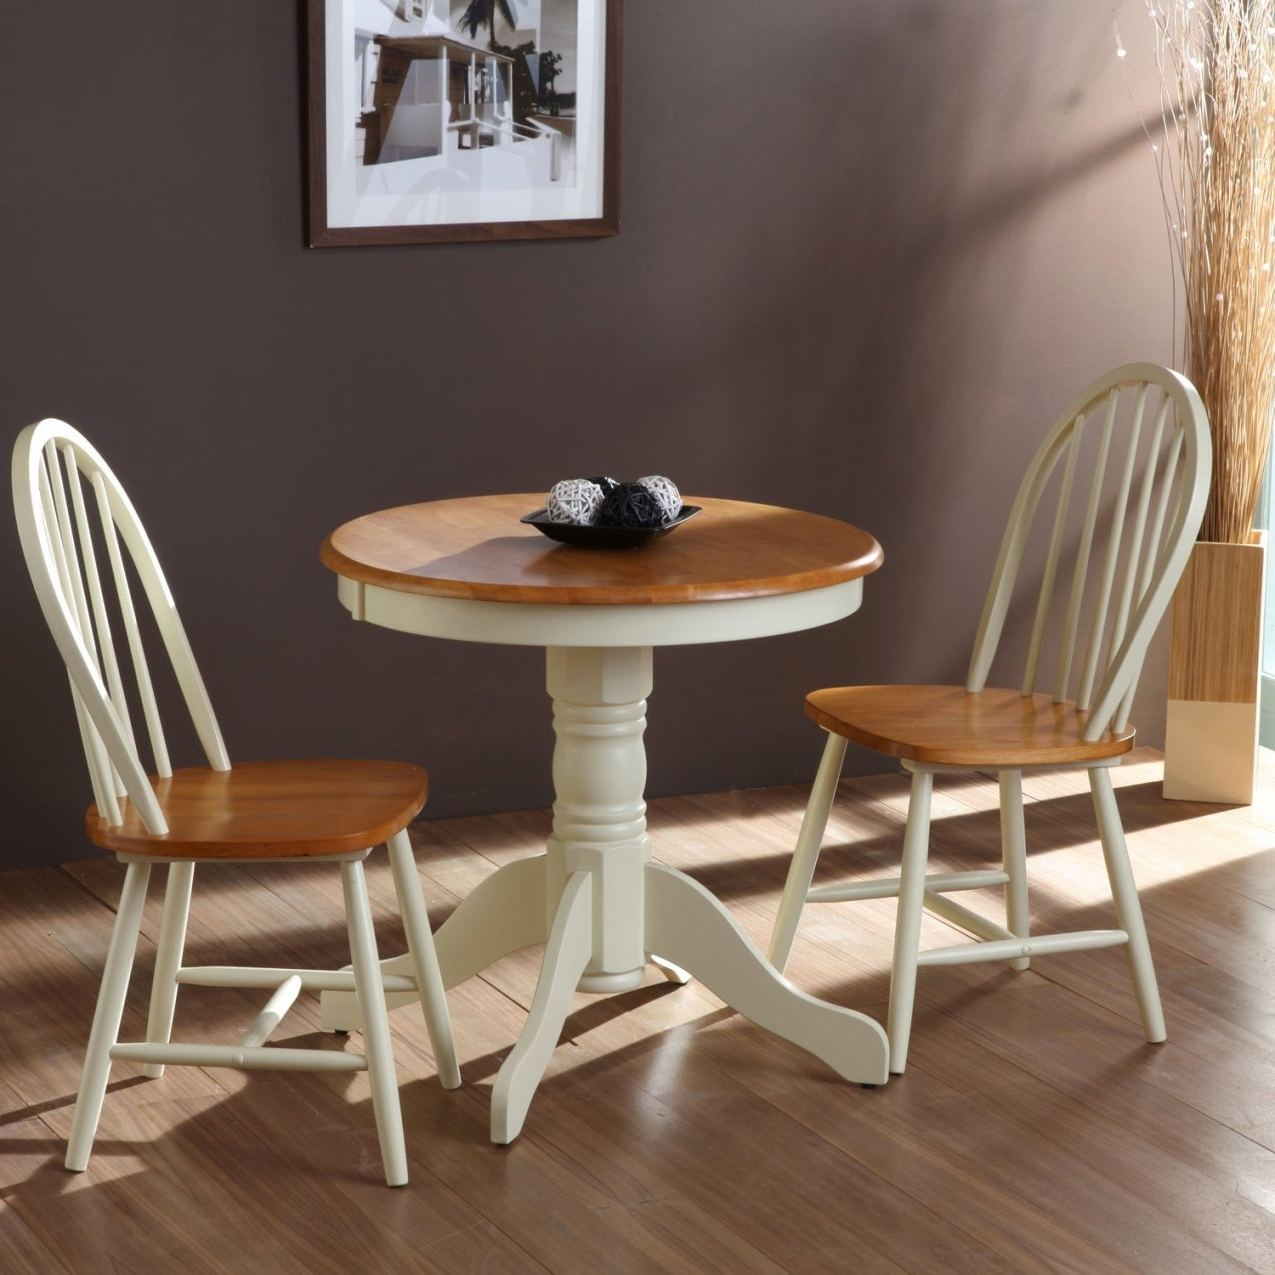 Best 2 Seater Dining Table And Chairs About Home Renovation Plan Inside Most Recently Released Two Seater Dining Tables (Gallery 15 of 25)